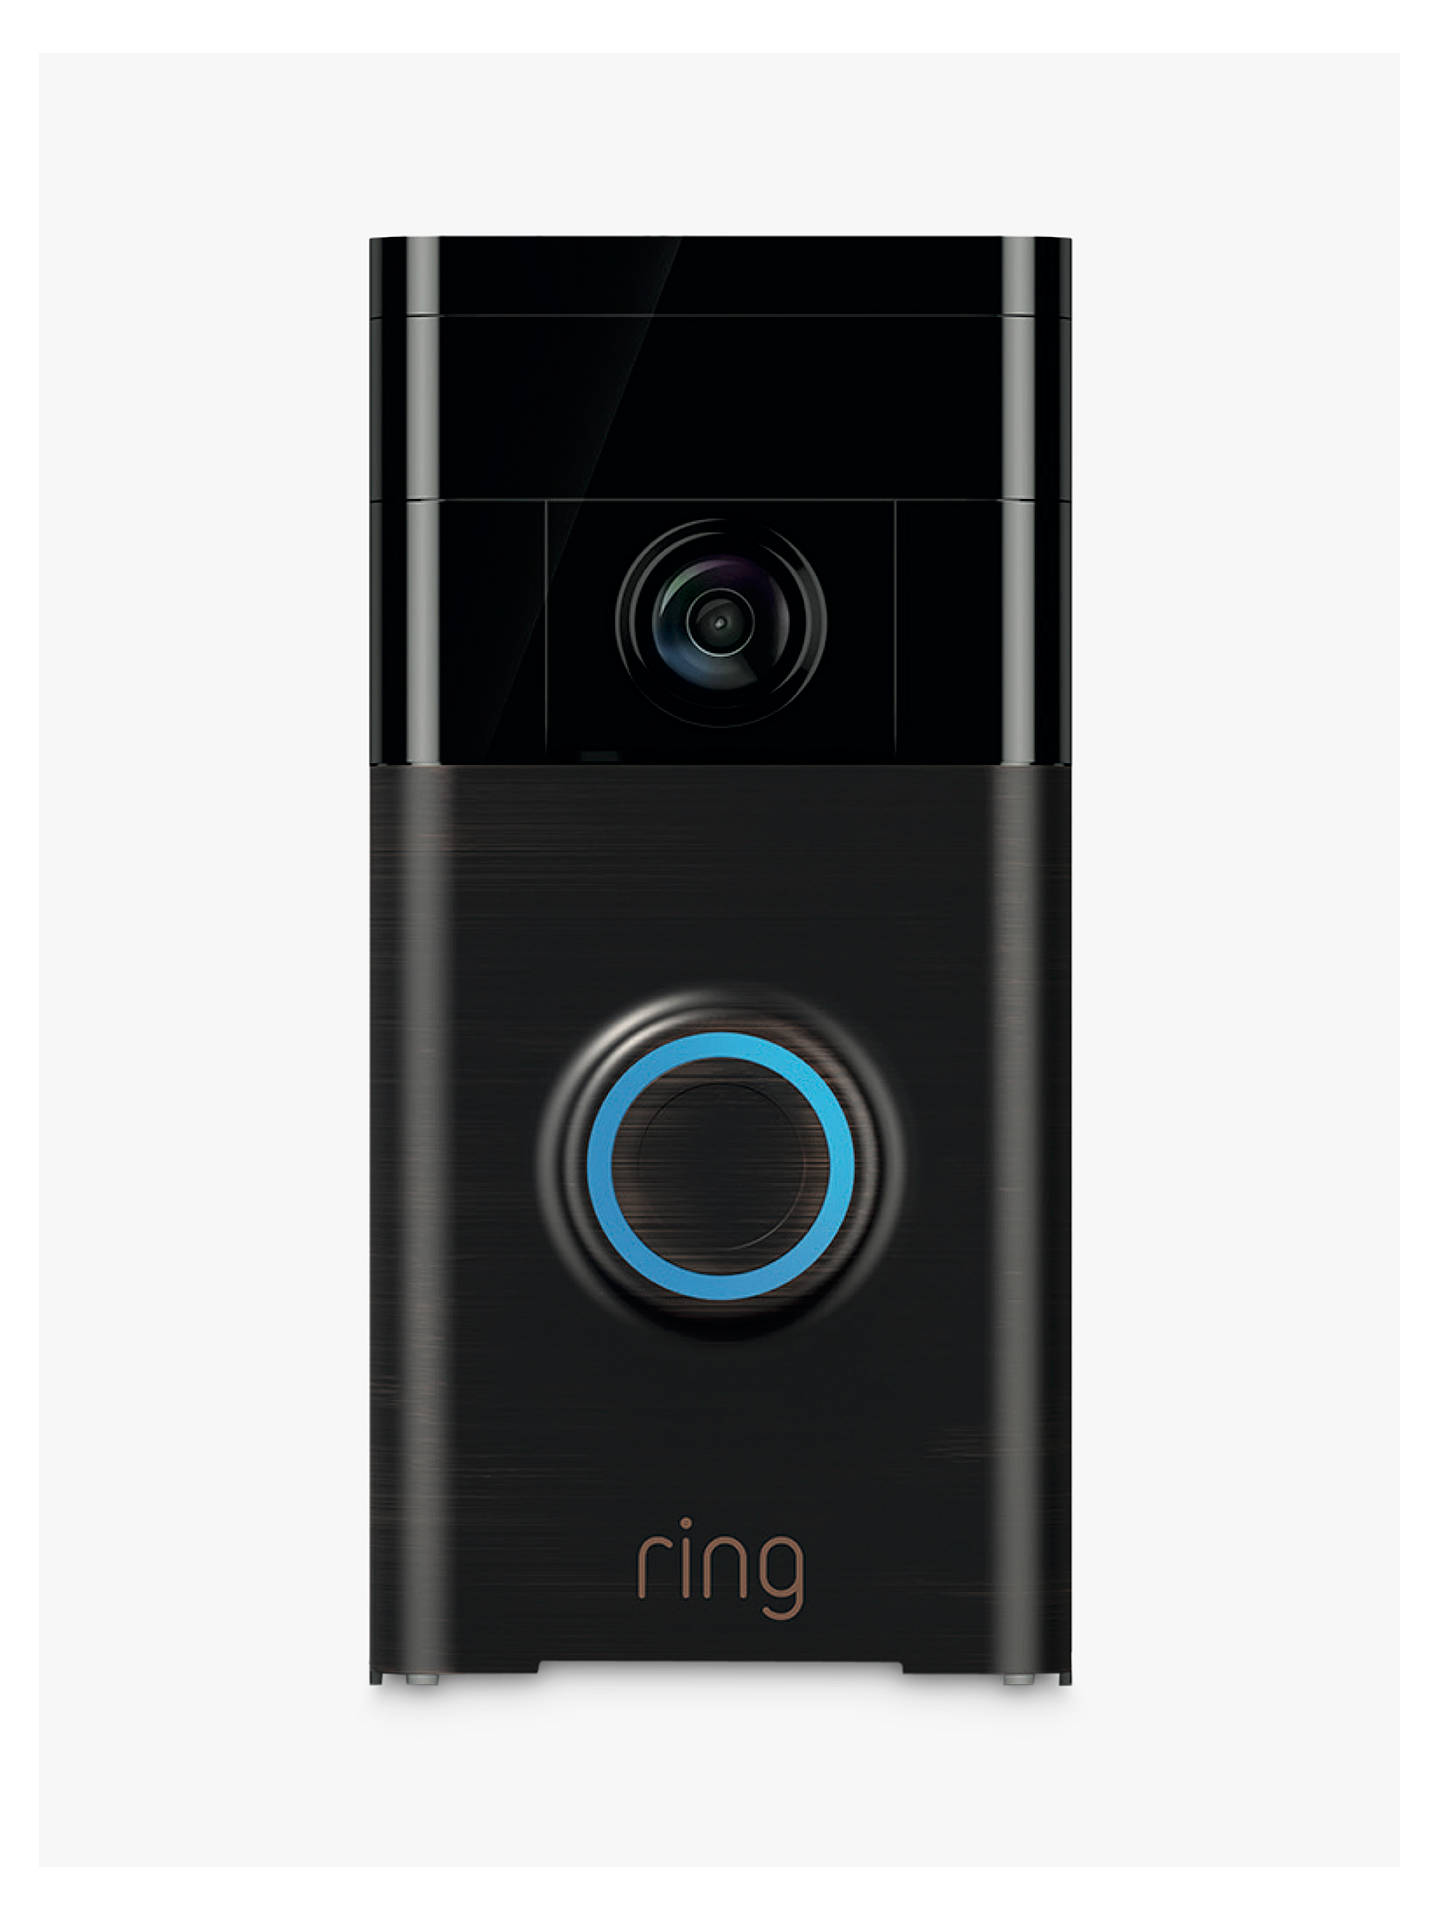 BuyRing Smart Video Doorbell with Built-in Wi-Fi & Camera, Venetian Bronze Online at johnlewis.com